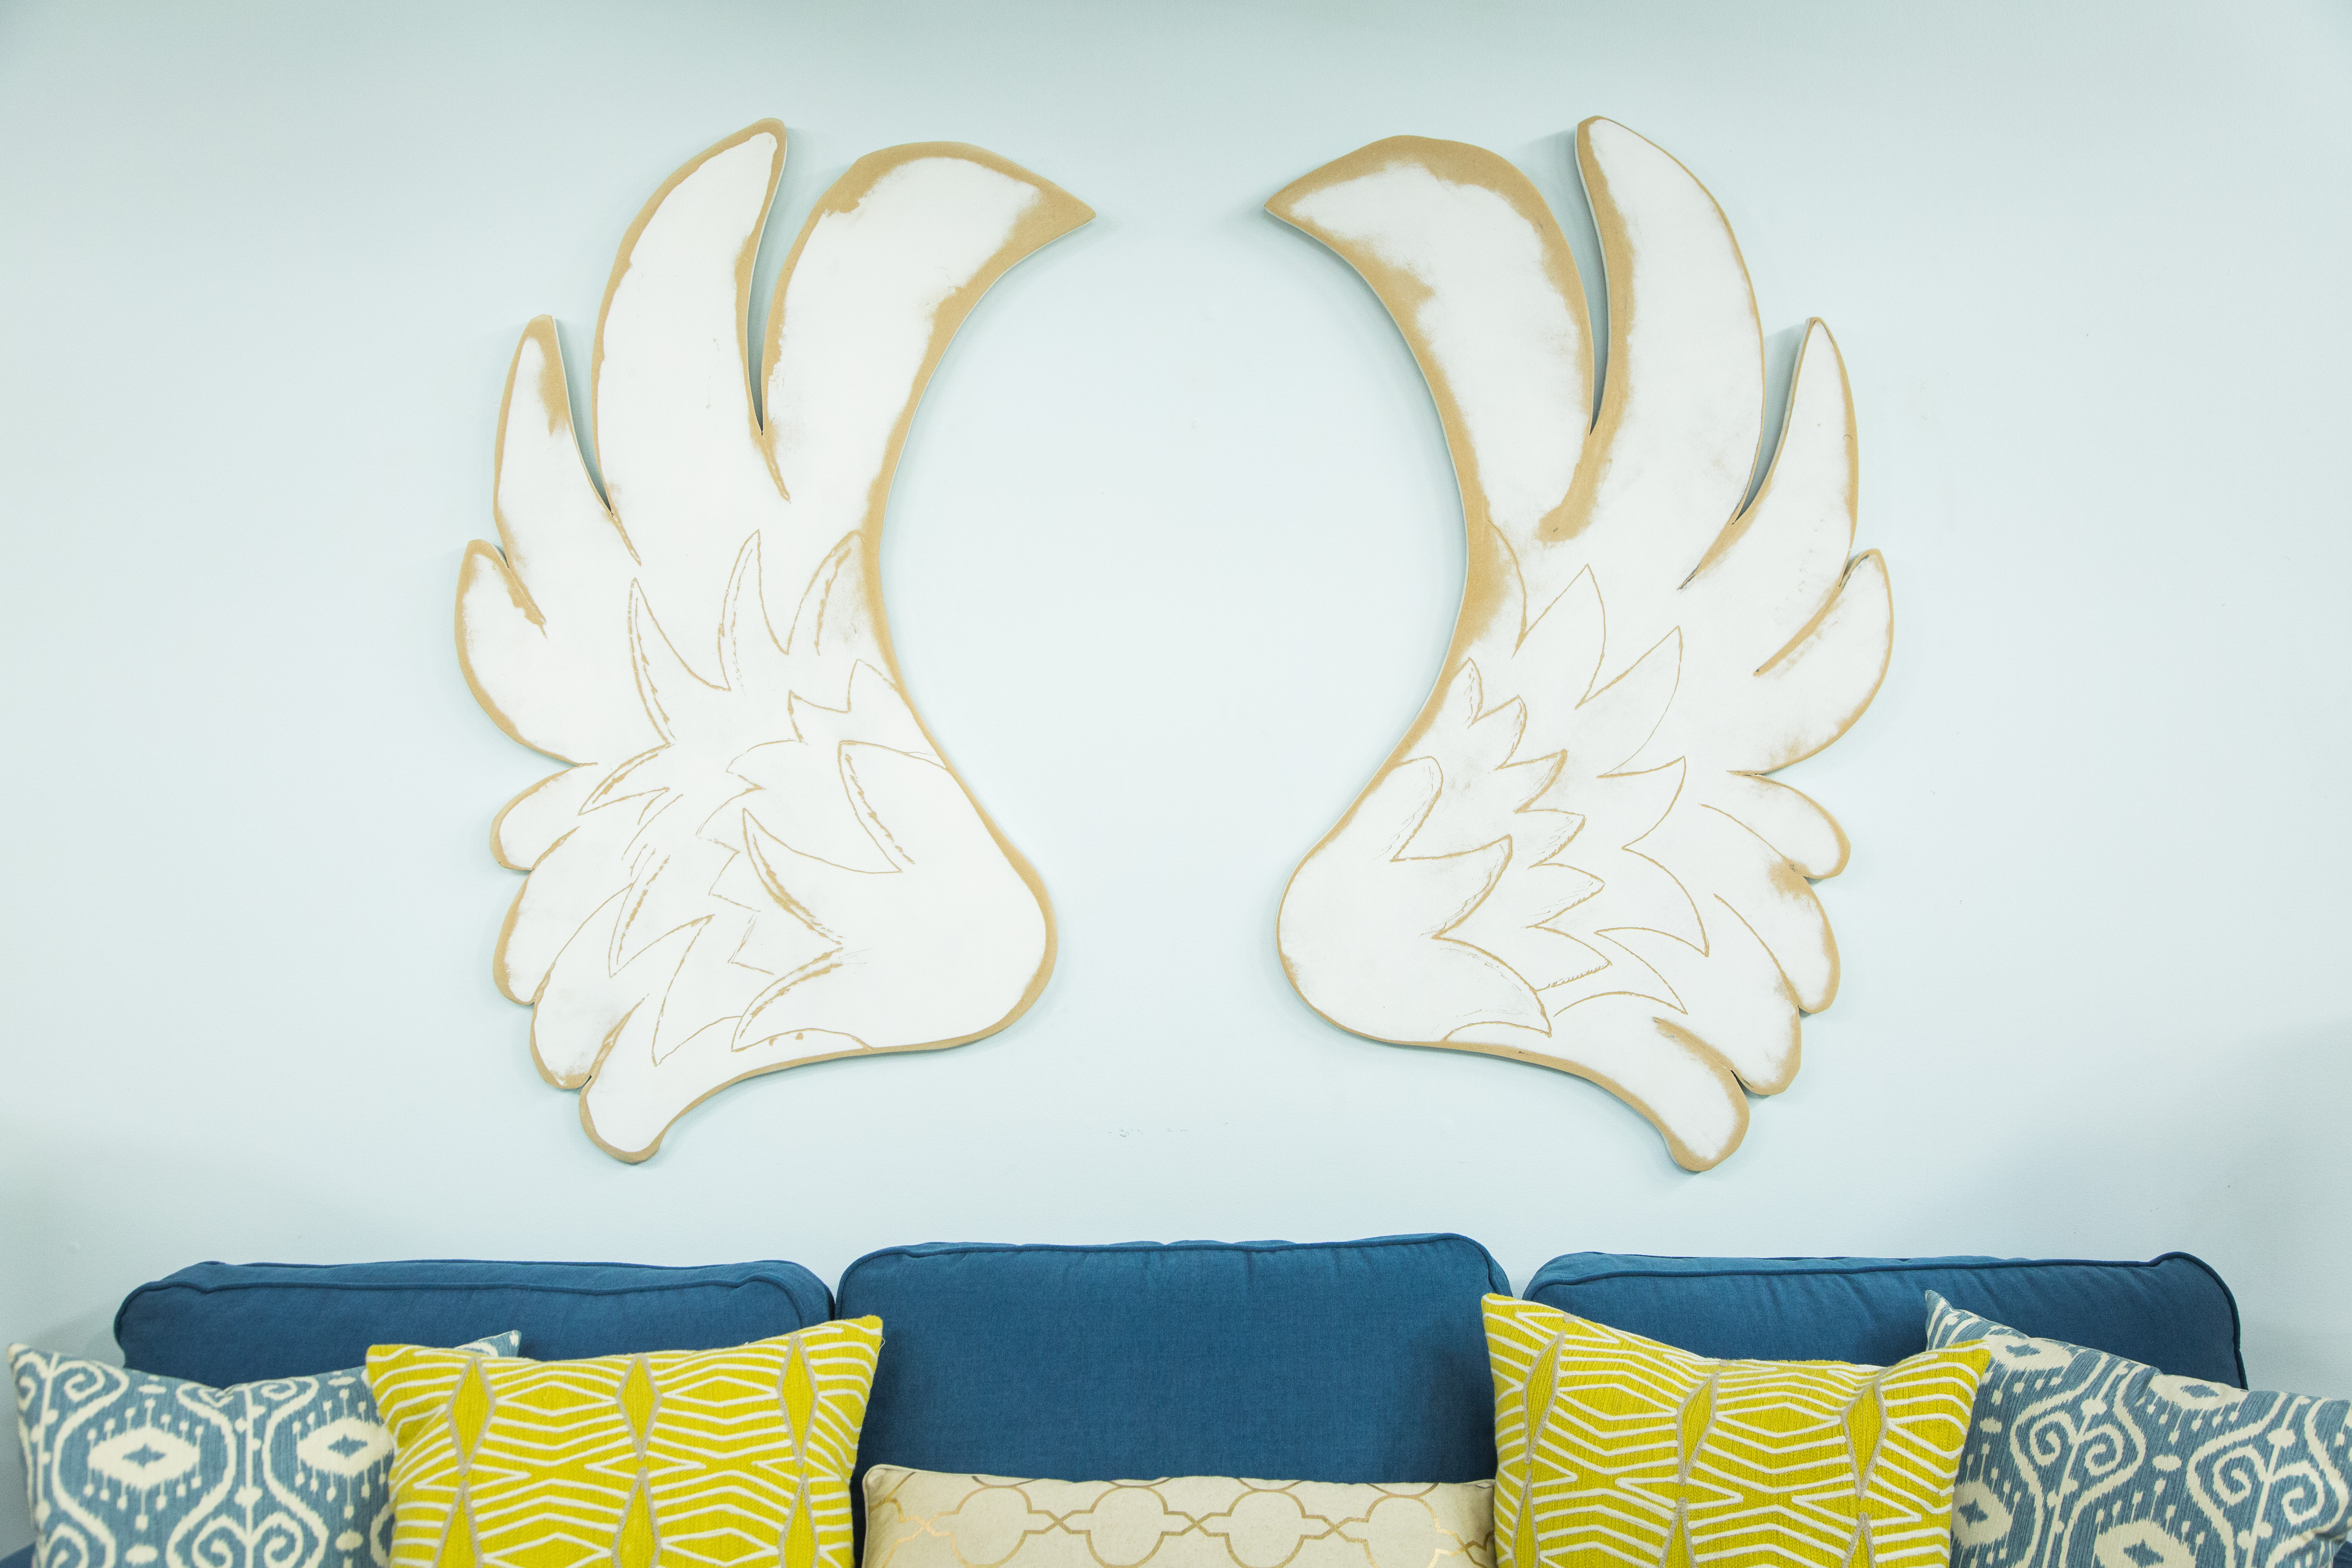 Angel Wings Wall Art how to - diy angel wings wall art | home & family | hallmark channel